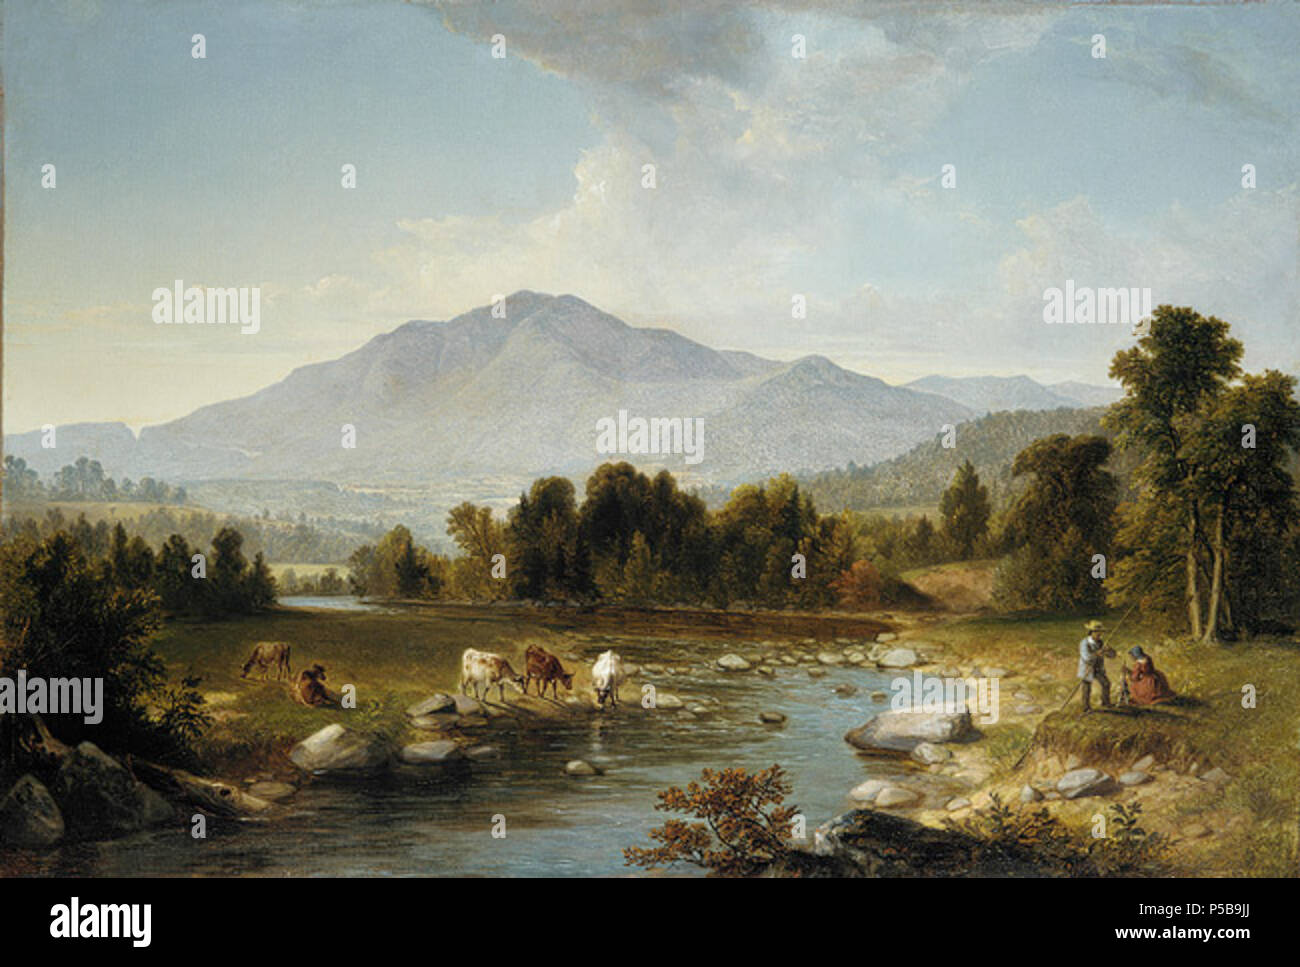 Working Title/Artist: Asher Brown Durand: High Point: Shandaken Mountains Department: Am. Paintings / Sculpture Culture/Period/Location:  HB/TOA Date Code:  Working Date:  photography by mma, ap77.3.1.tif retouched by film and media (jnc) 9 22 09 486 Durand Asher B High Point Shandaken Mountains - Stock Image